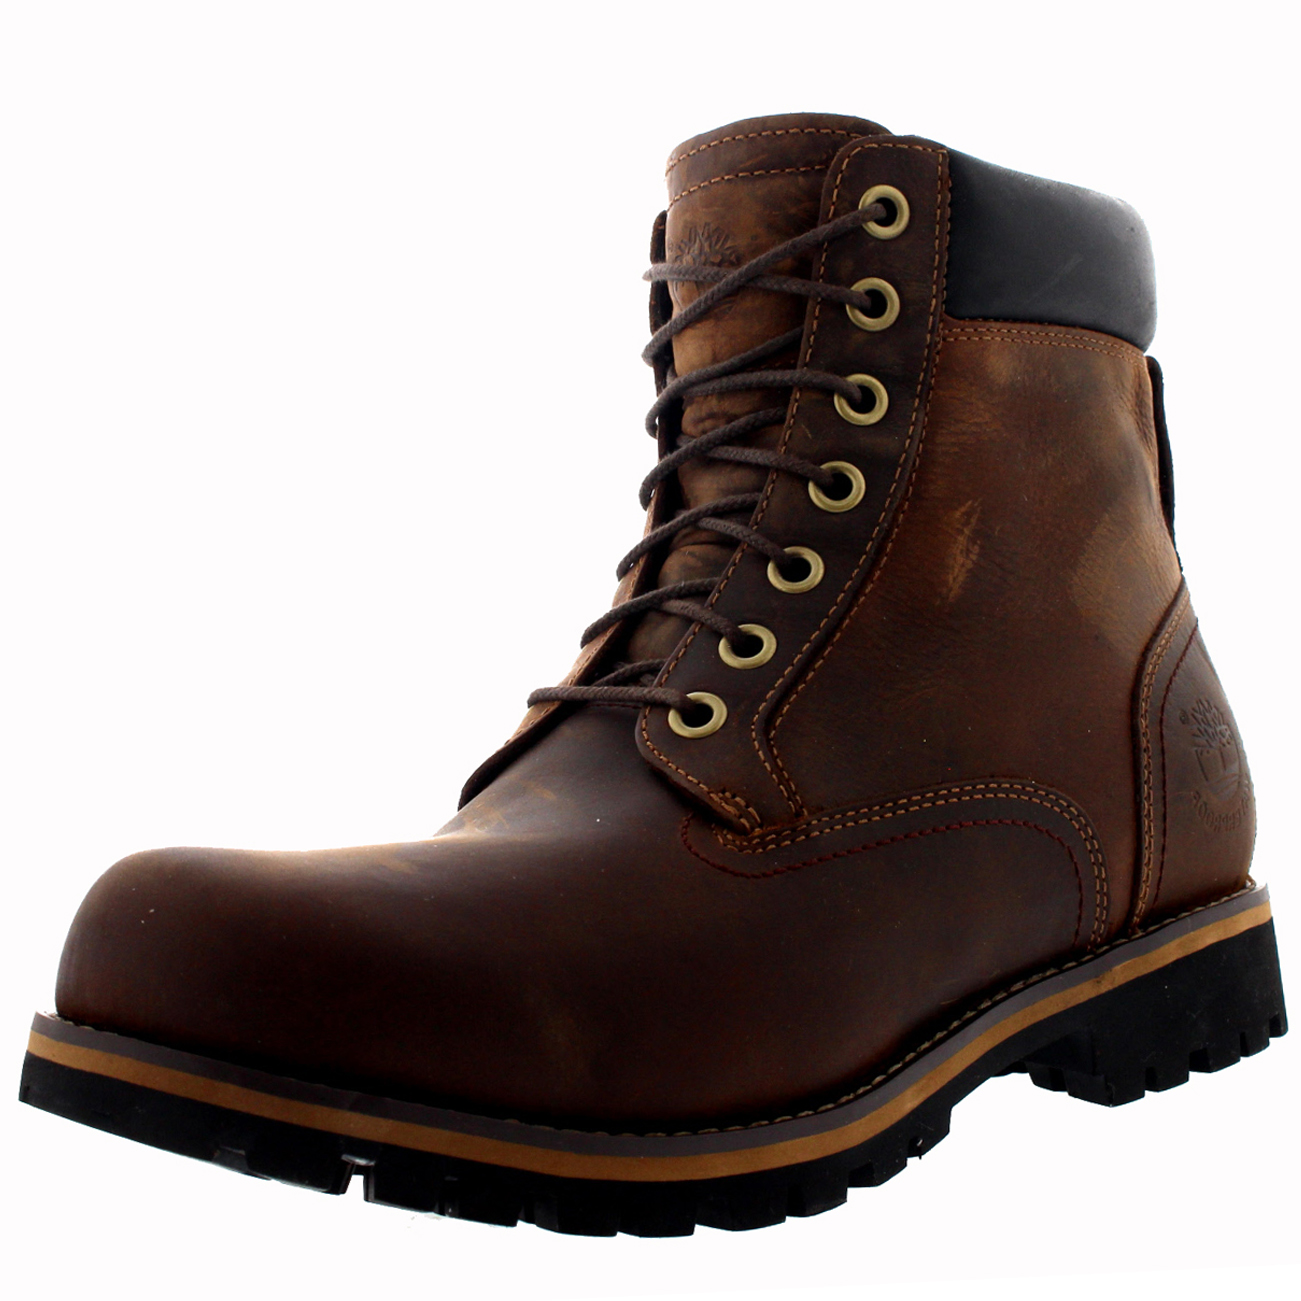 Timberland Earthkeepers Rugged 6 Inch Plain Toe